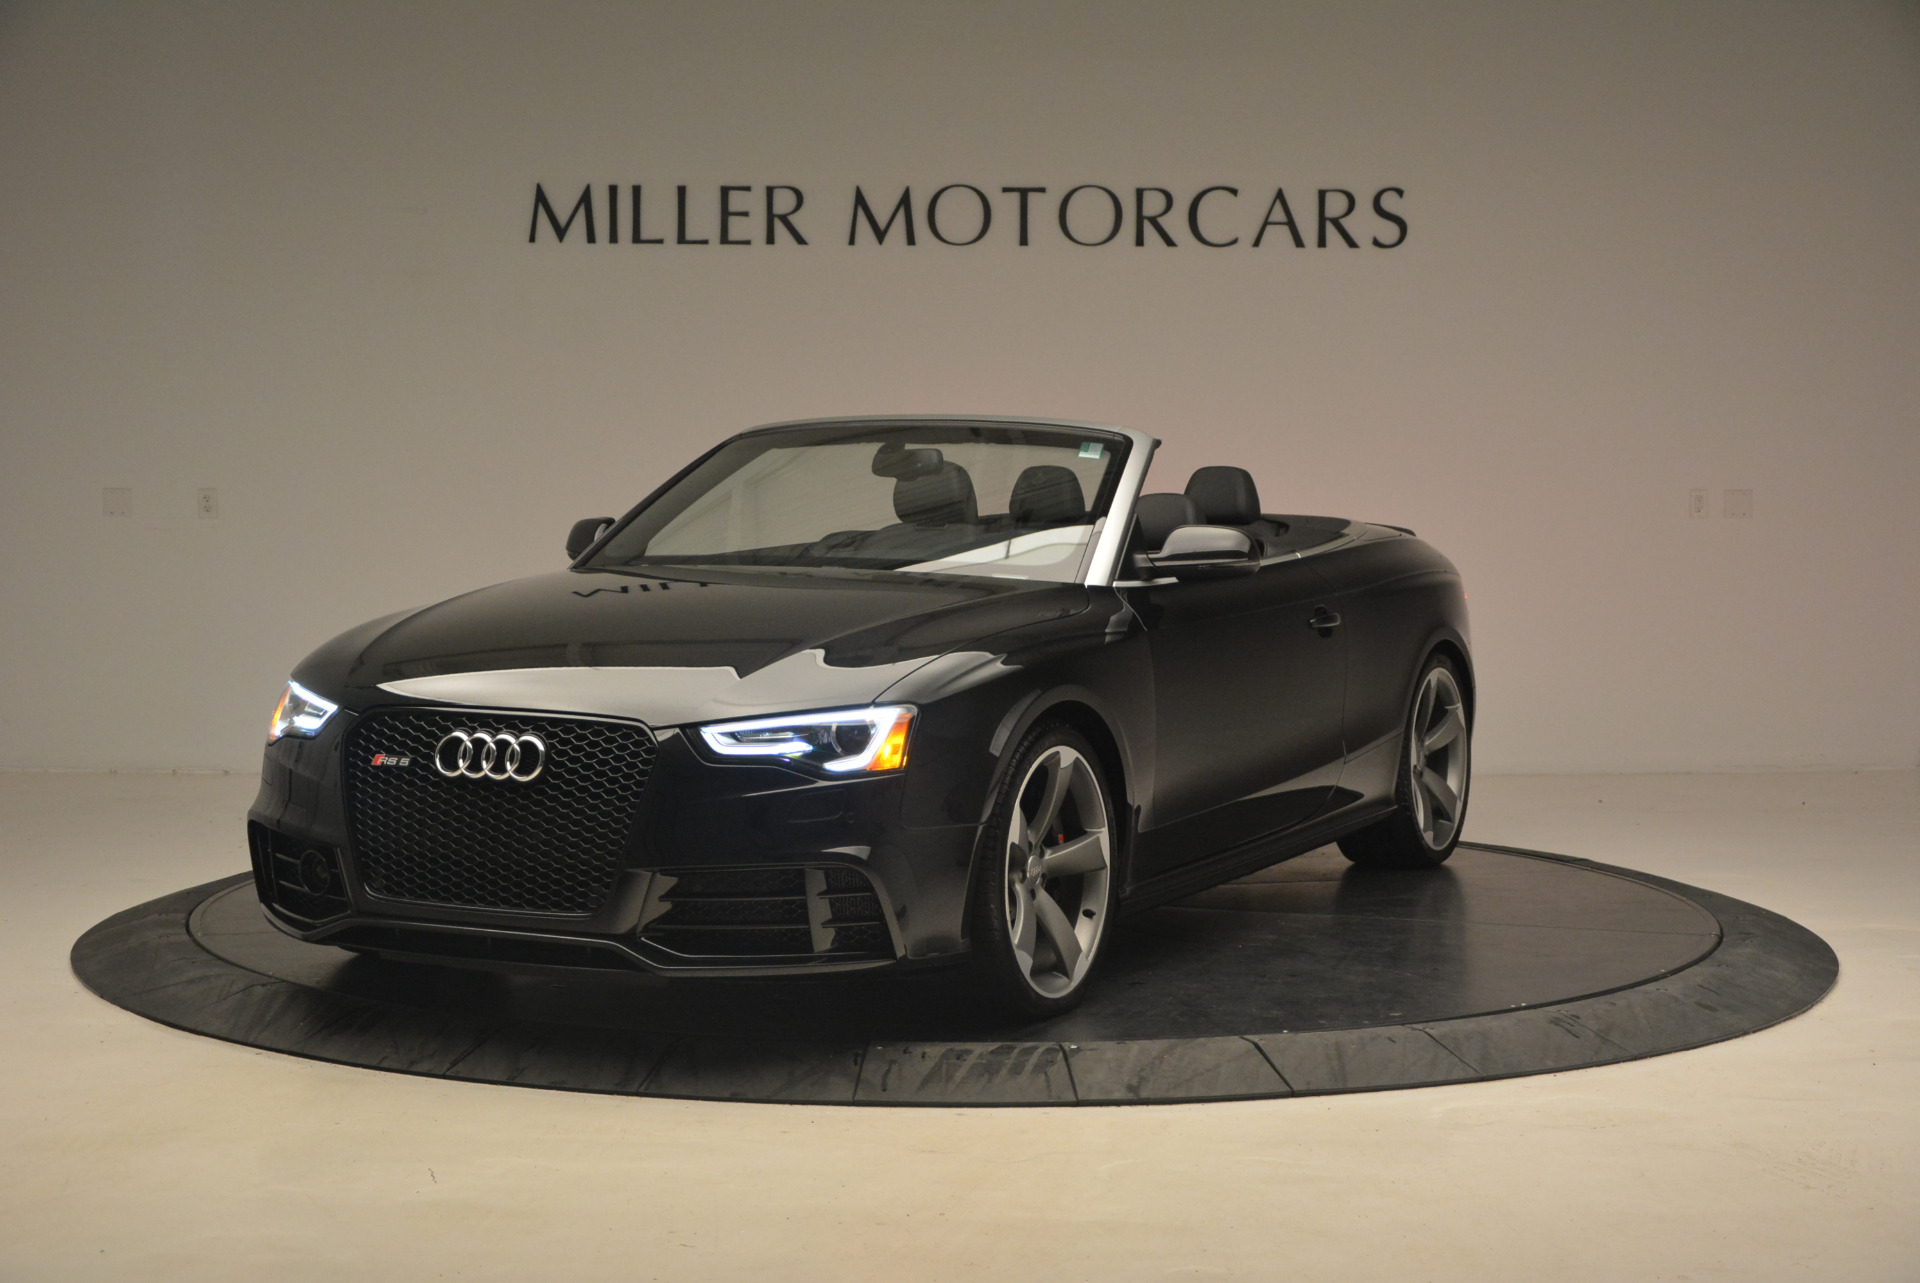 Used 2014 Audi RS 5 quattro for sale Sold at Bentley Greenwich in Greenwich CT 06830 1